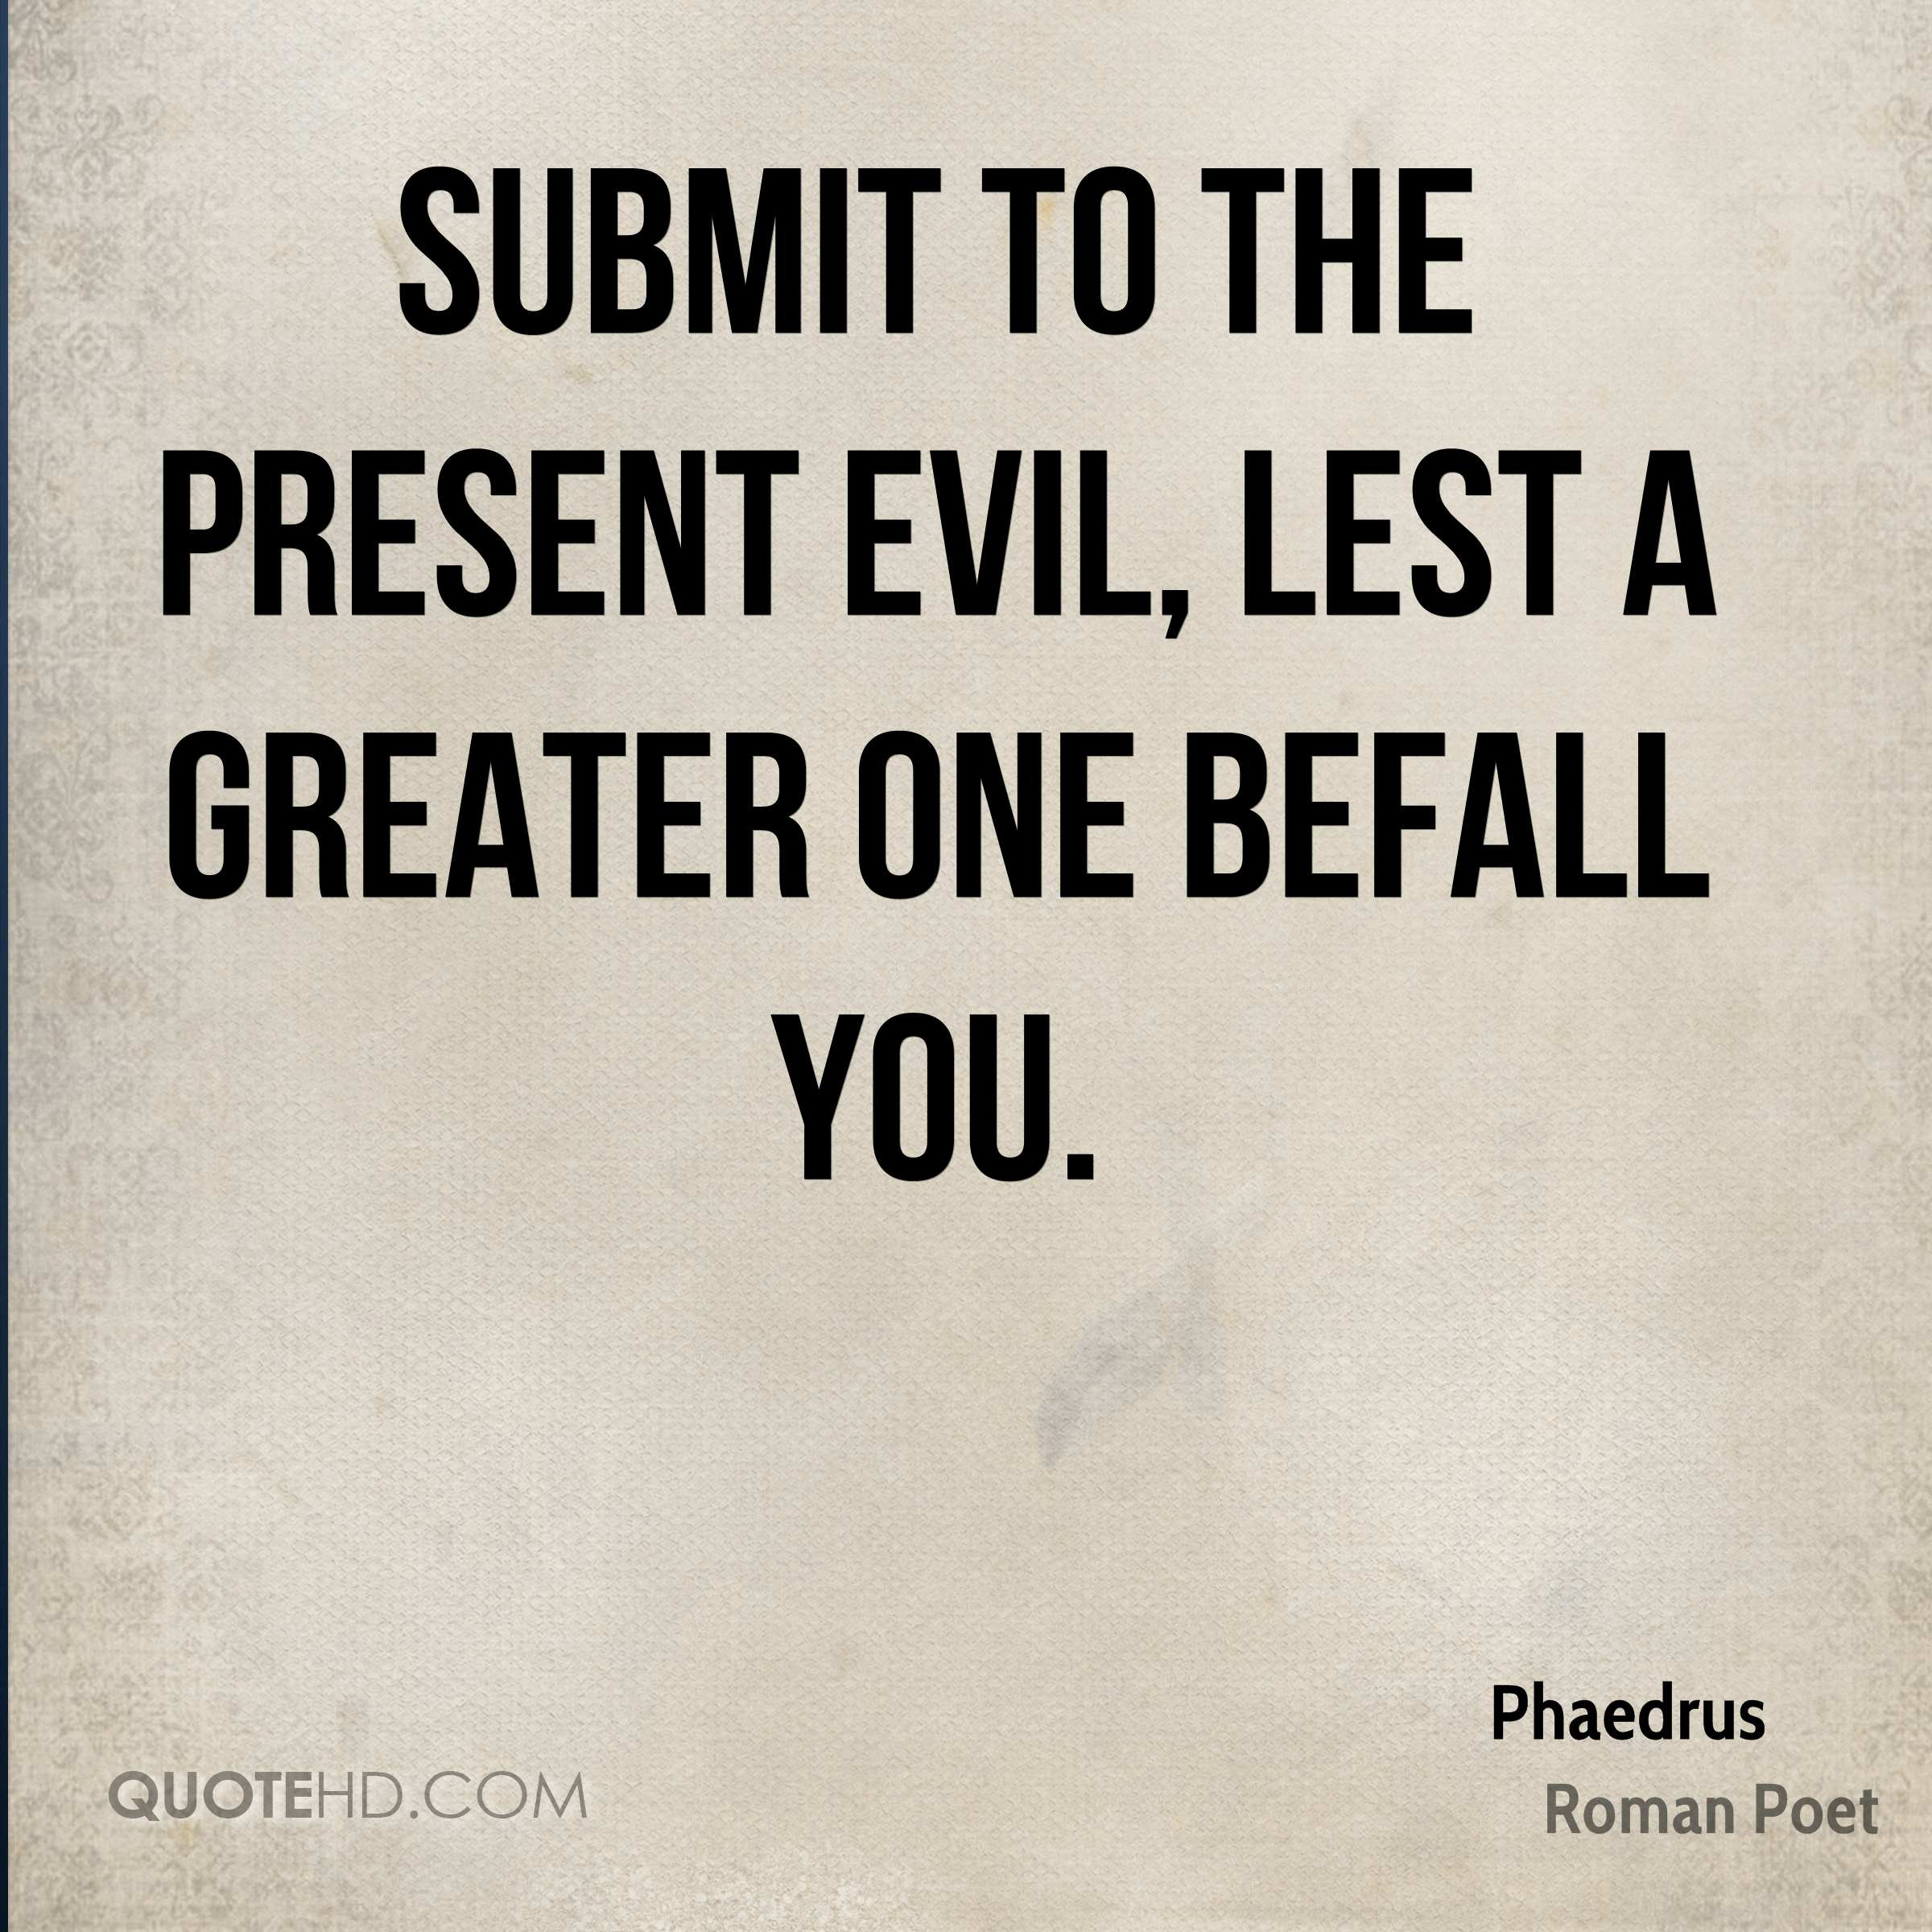 Submit to the present evil, lest a greater one befall you.